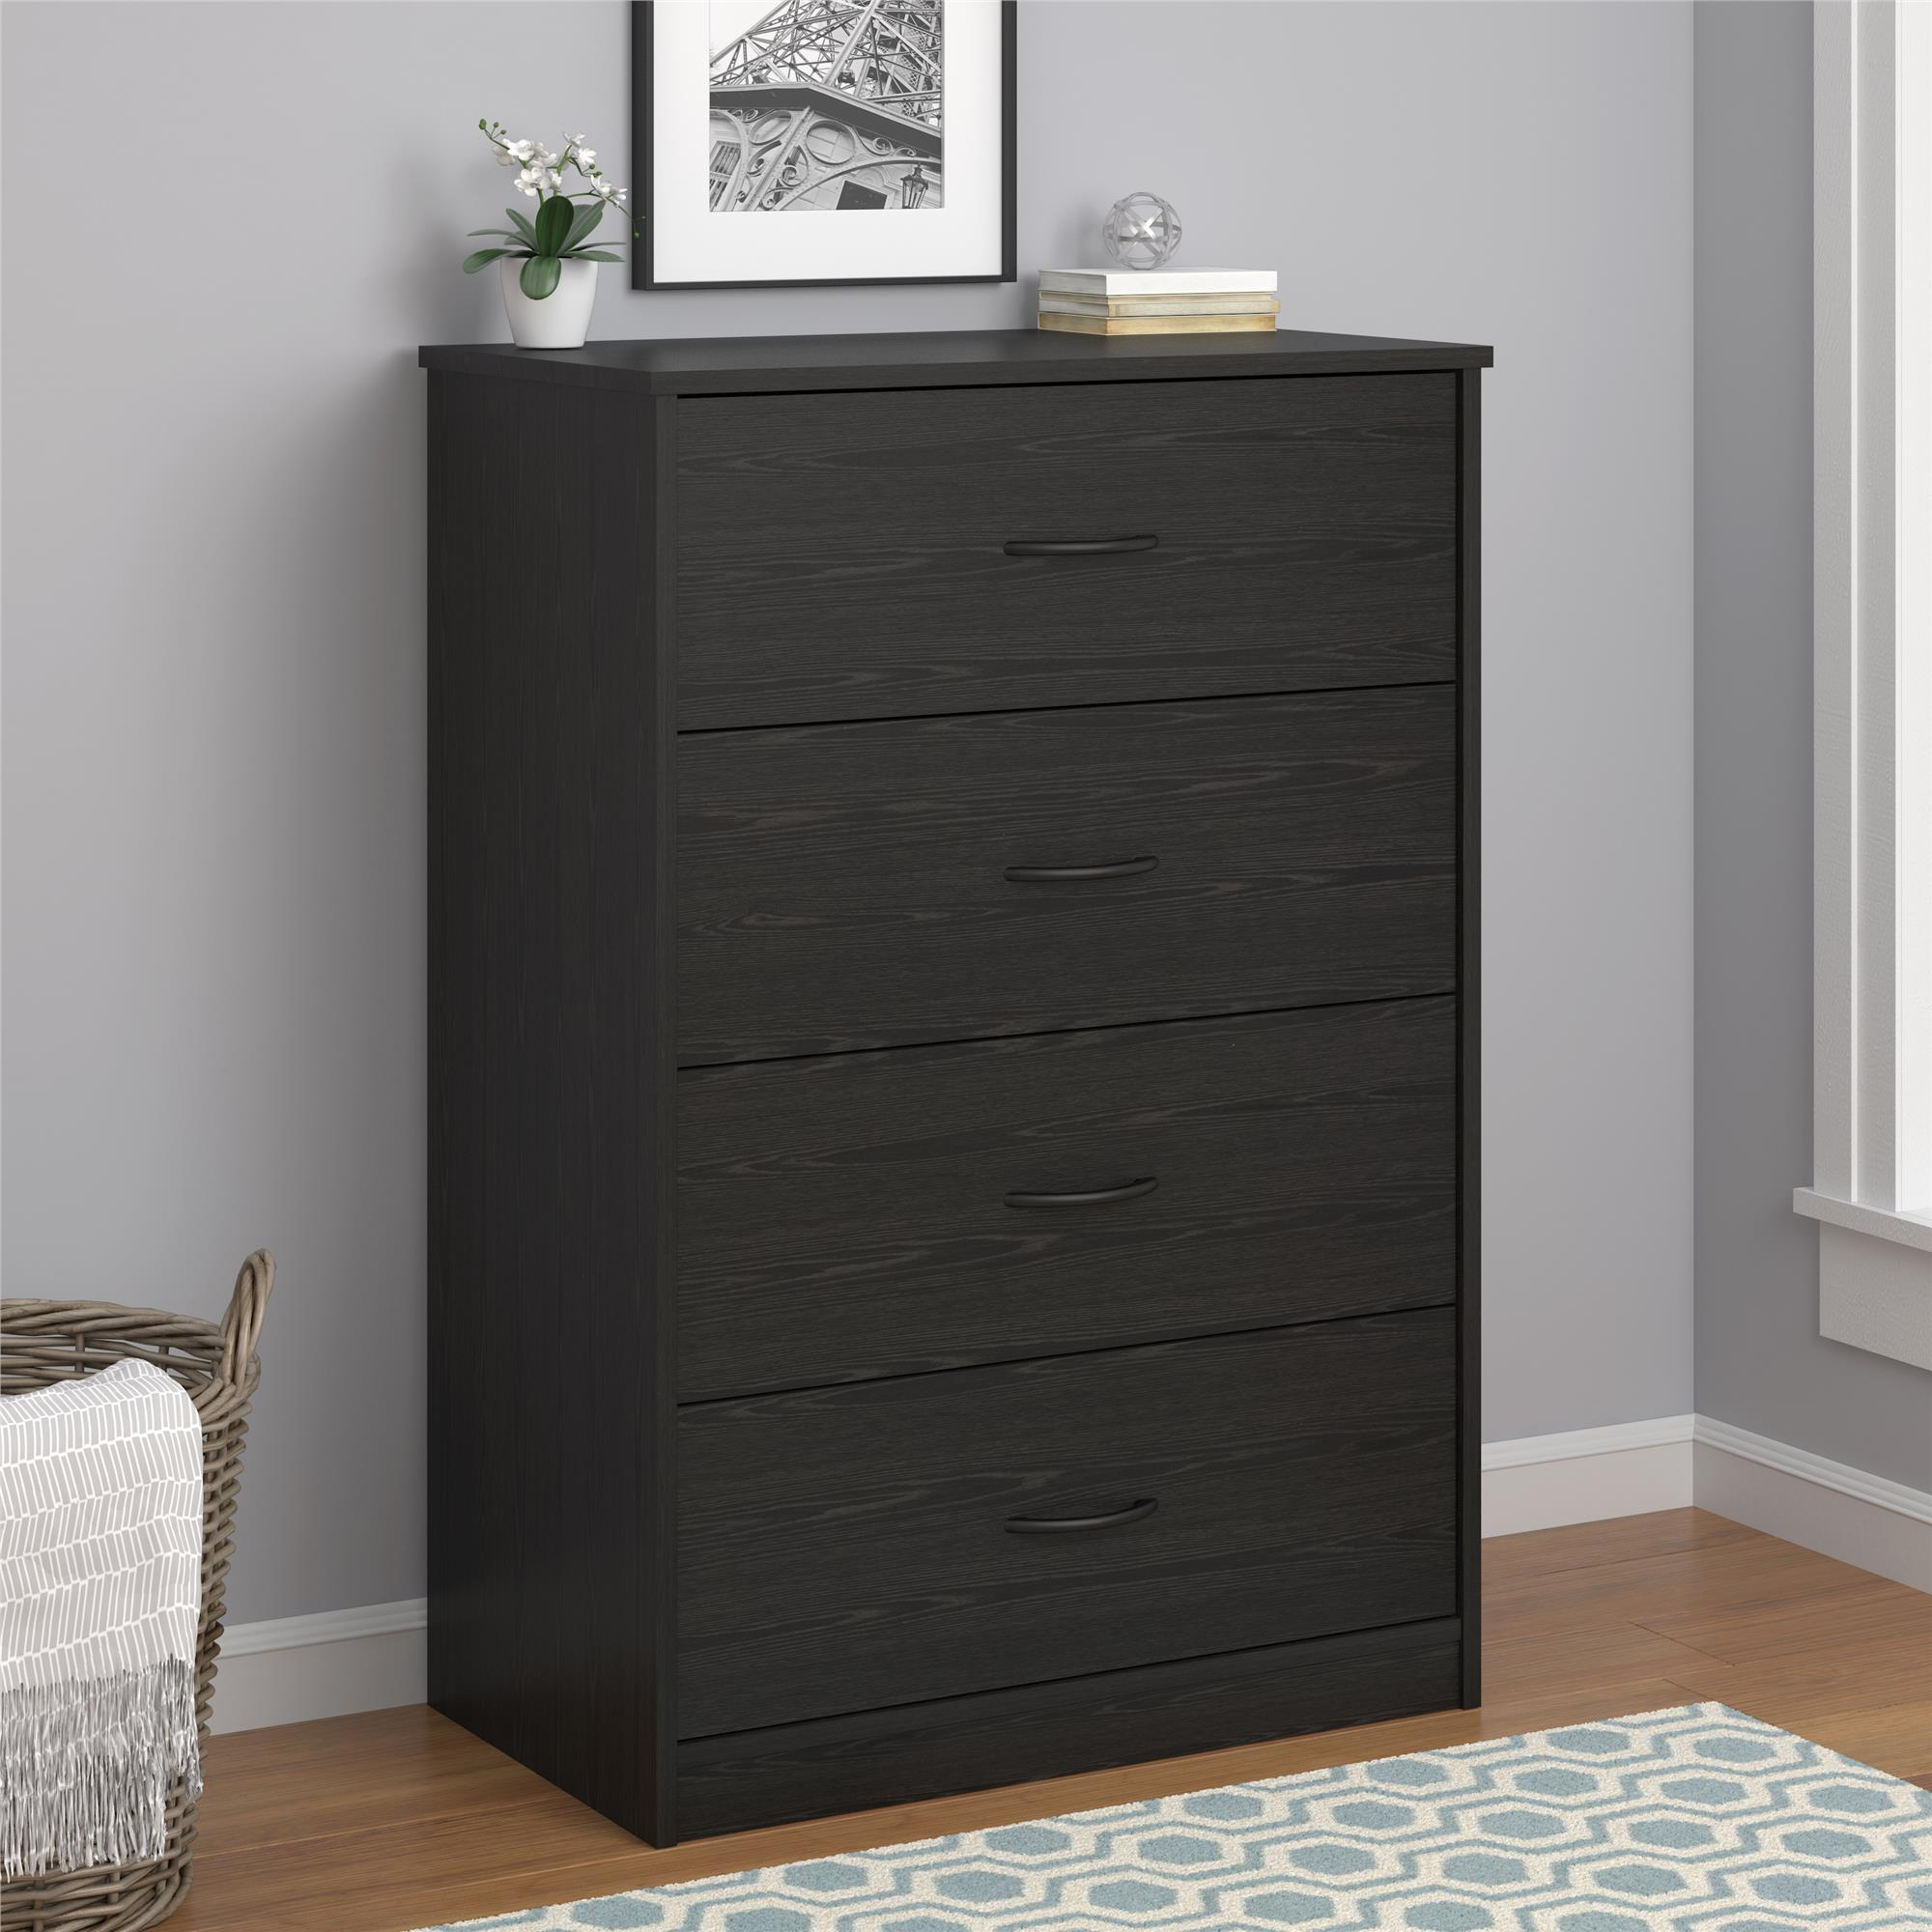 Mainstays 4-Drawer Dresser, Multiple Colors by Ameriwood Home